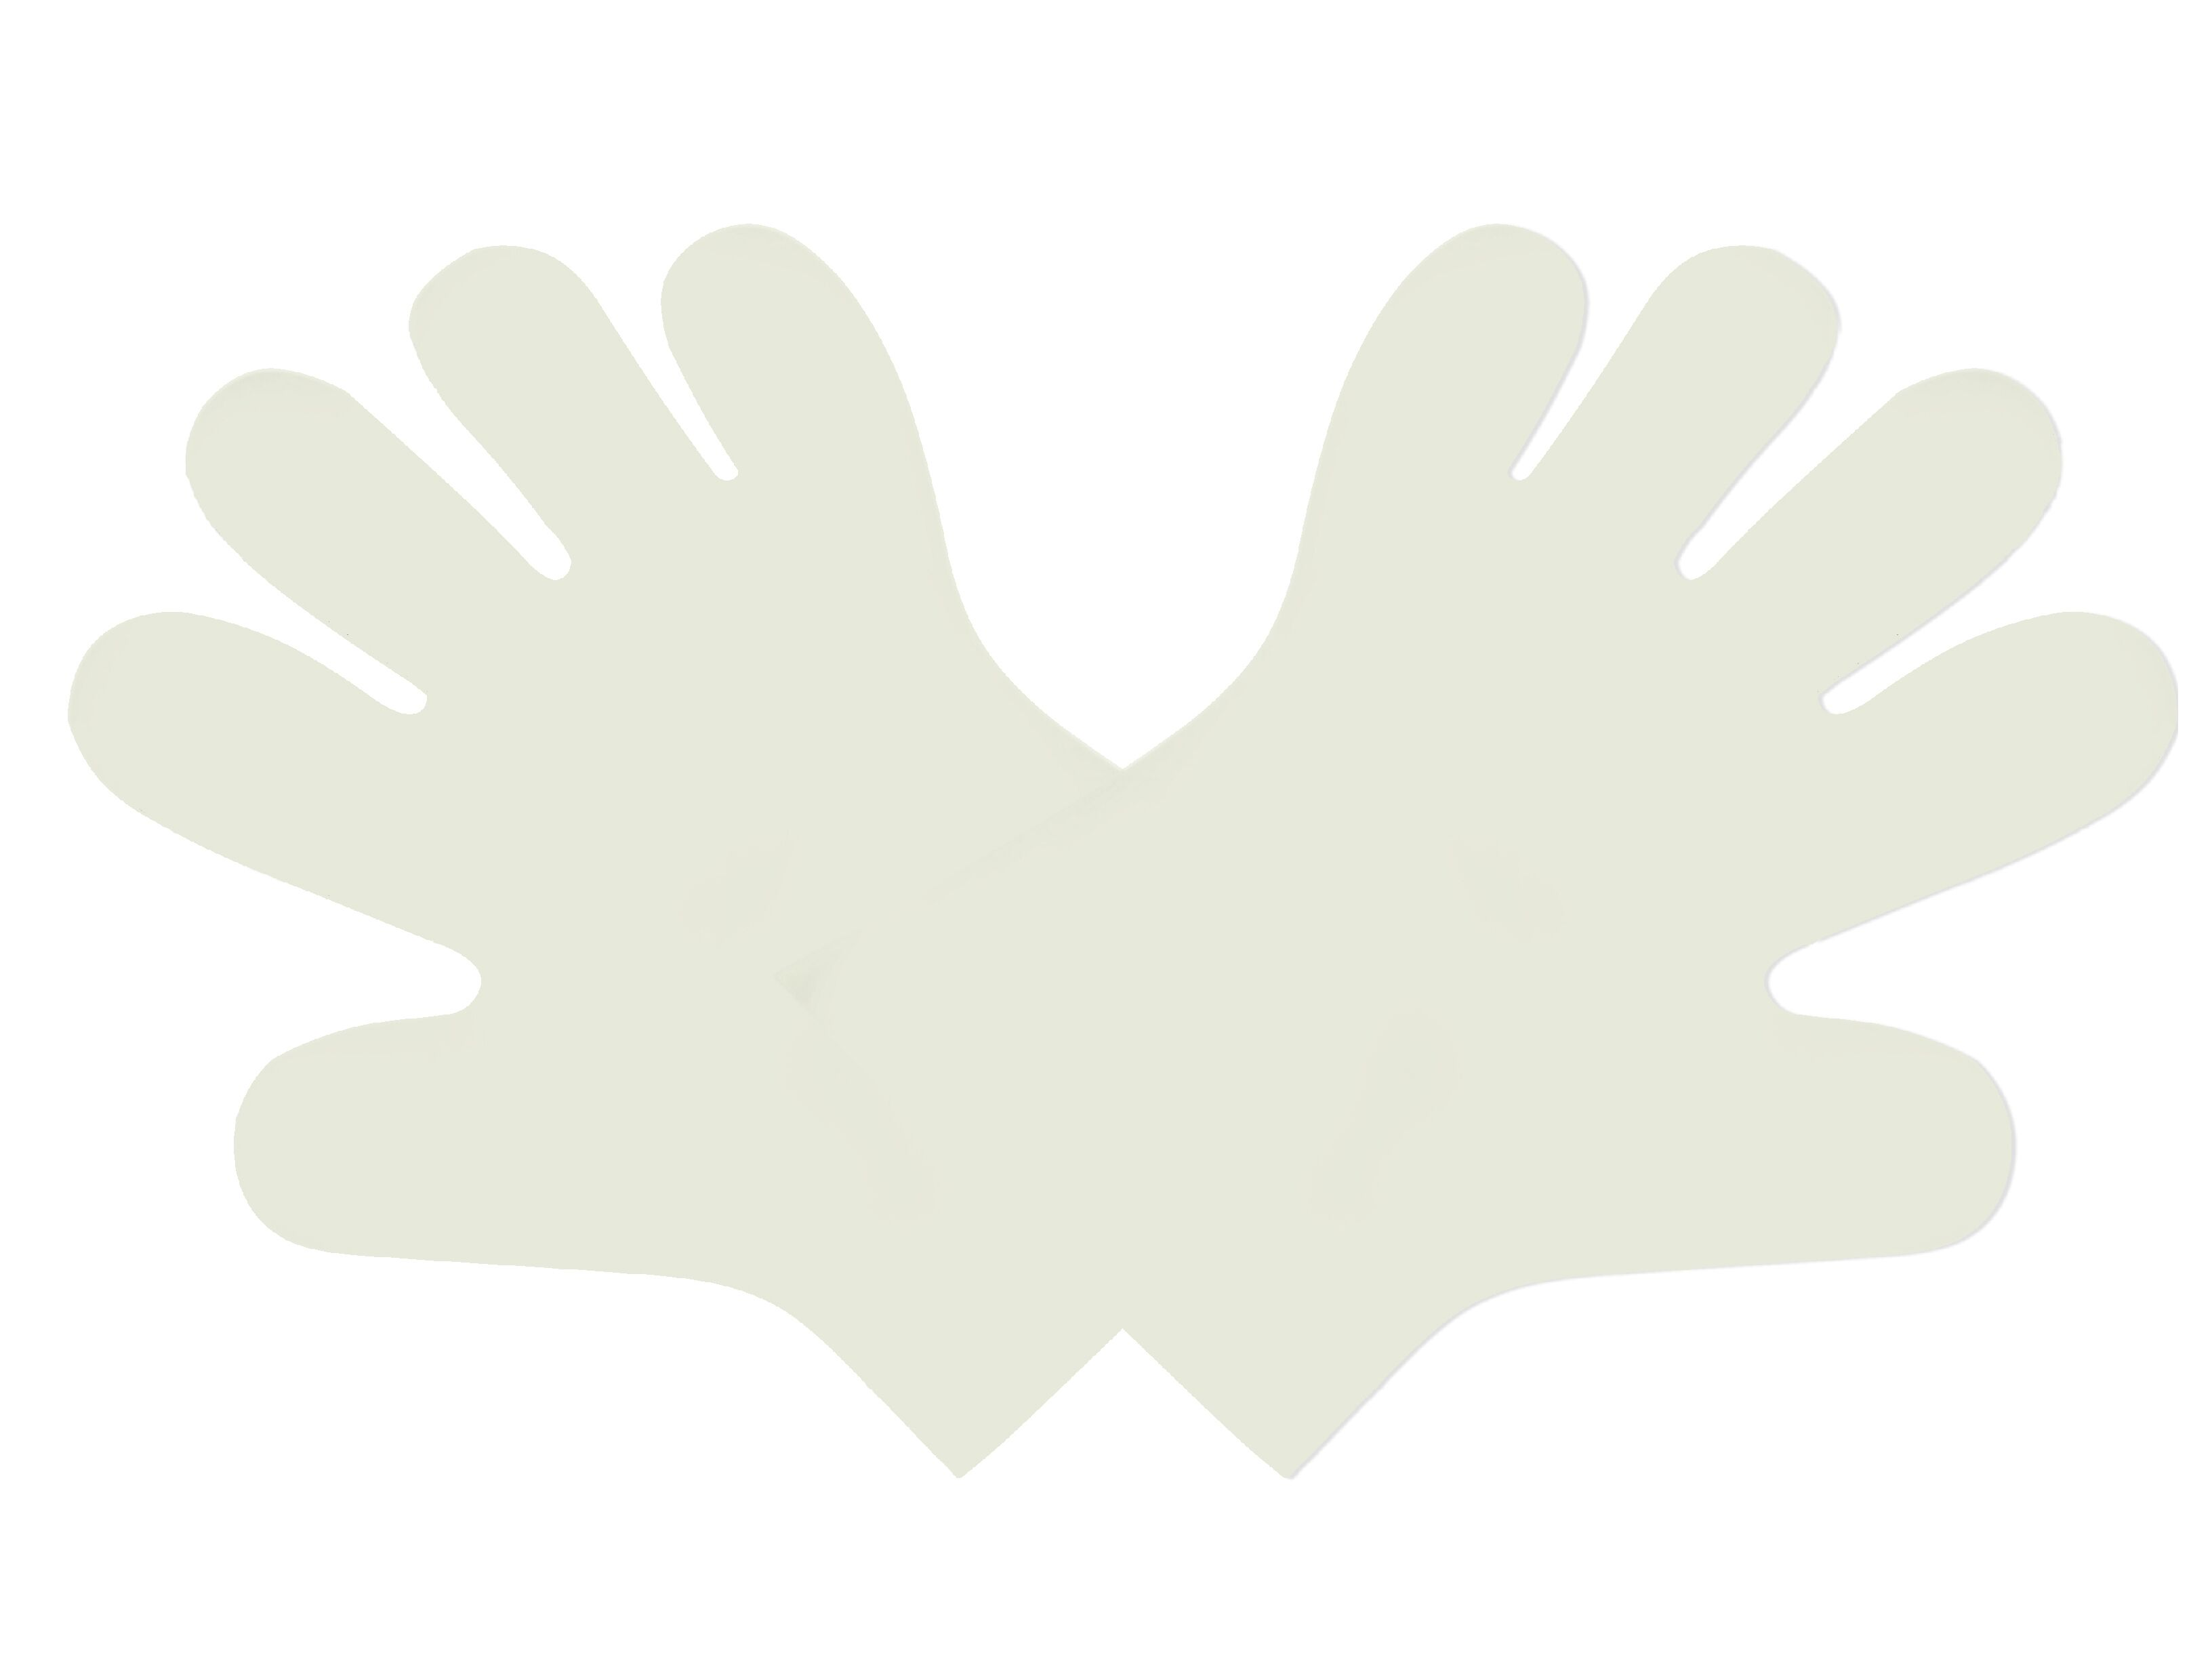 Food handling gloves, Size: Large, Color: Clear, Compostable, 2400/cs